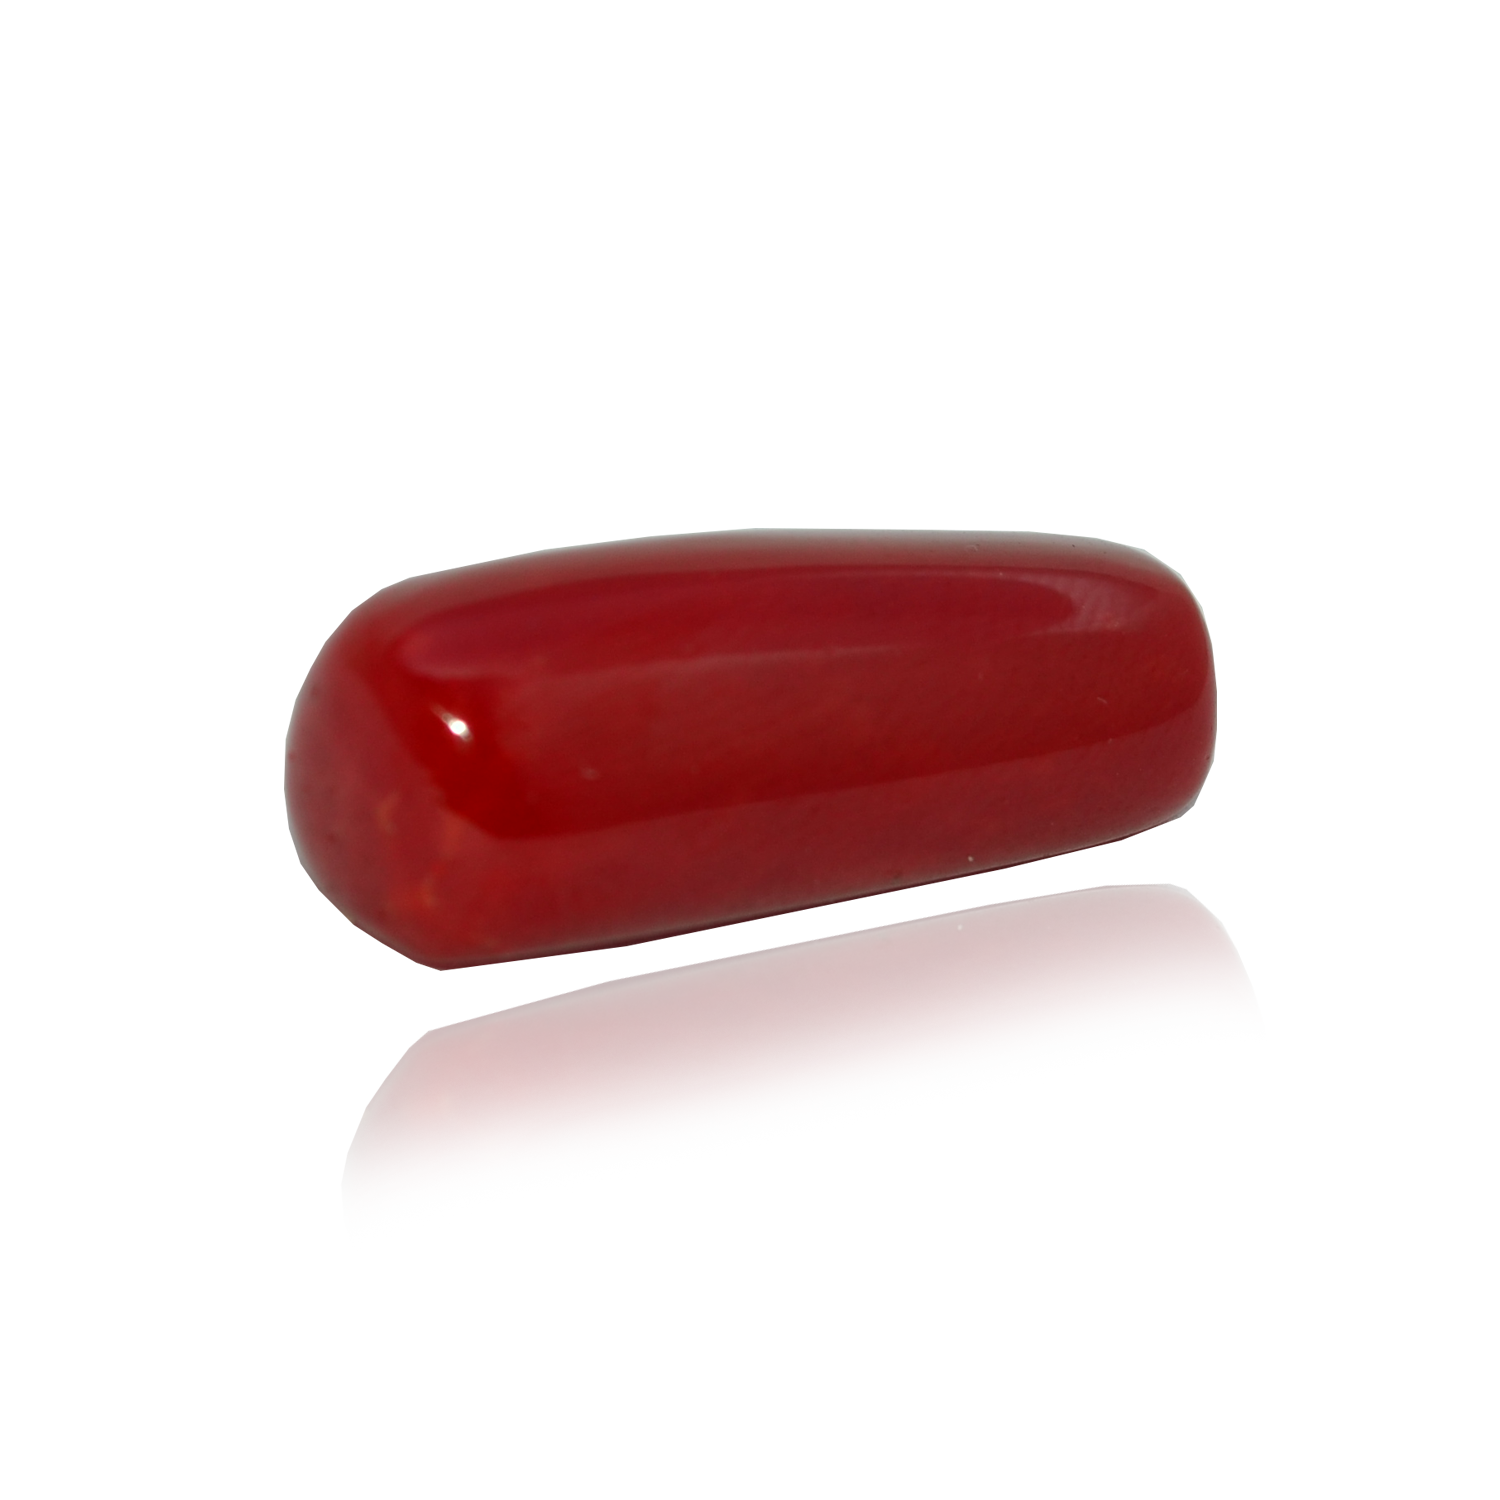 15.2 CARAT, OVAL CABOCHON CUT NATURAL RED CORAL